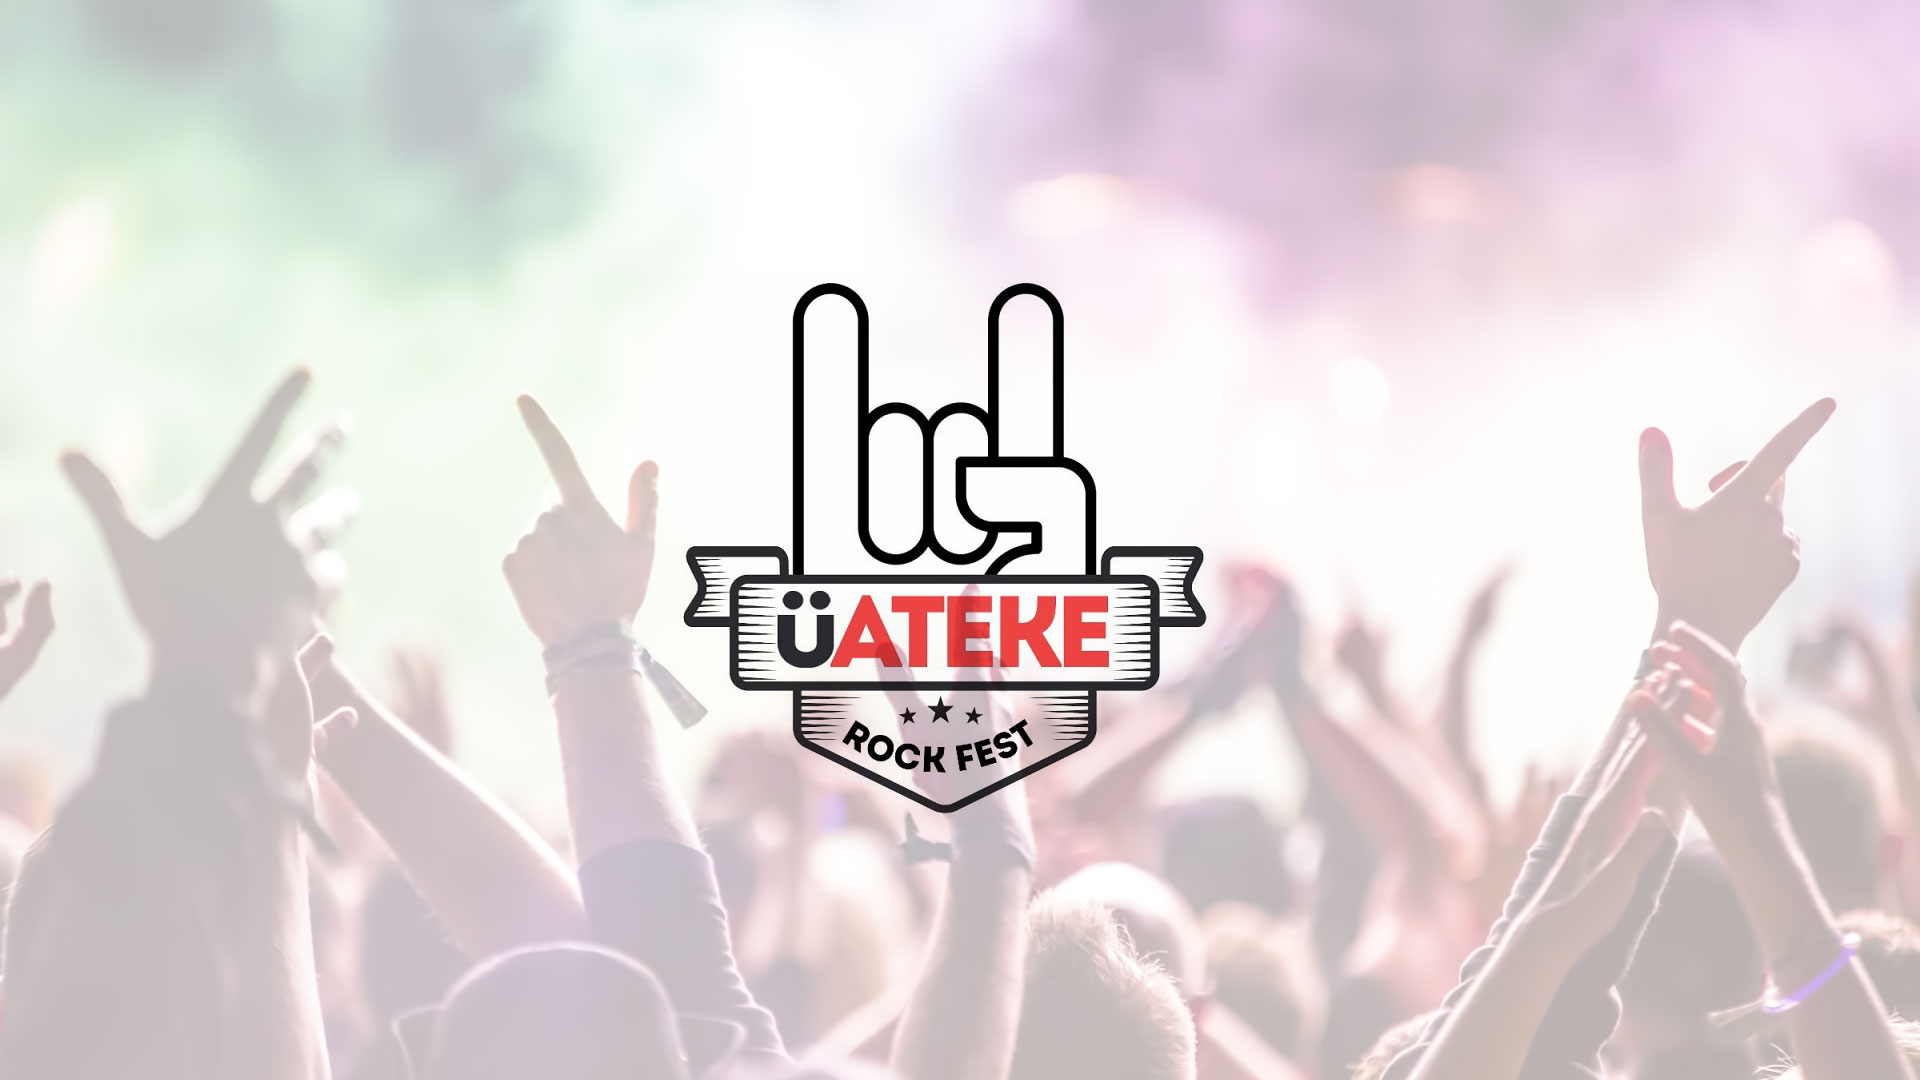 Üateke Rock Fest 2017 – Gran Debut en USA